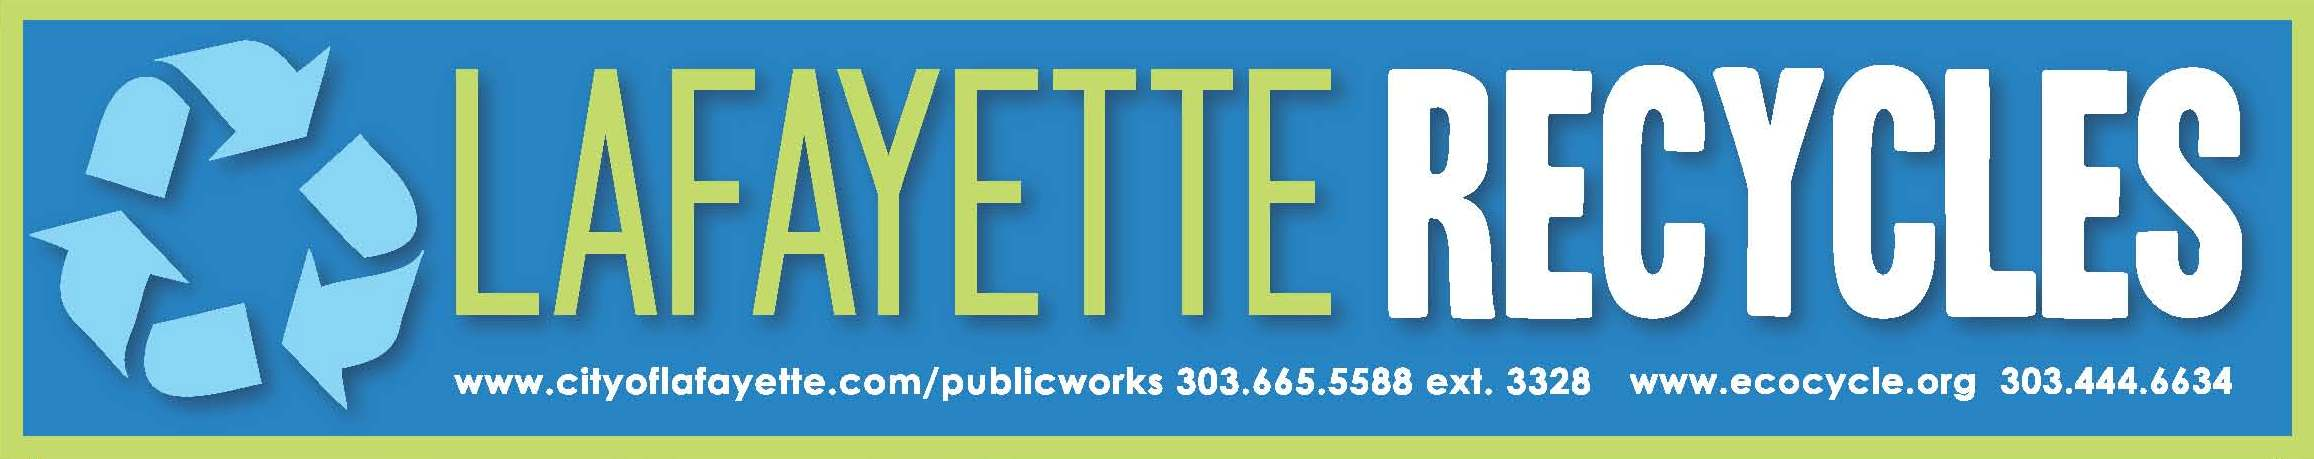 Lafayette Recycles banner